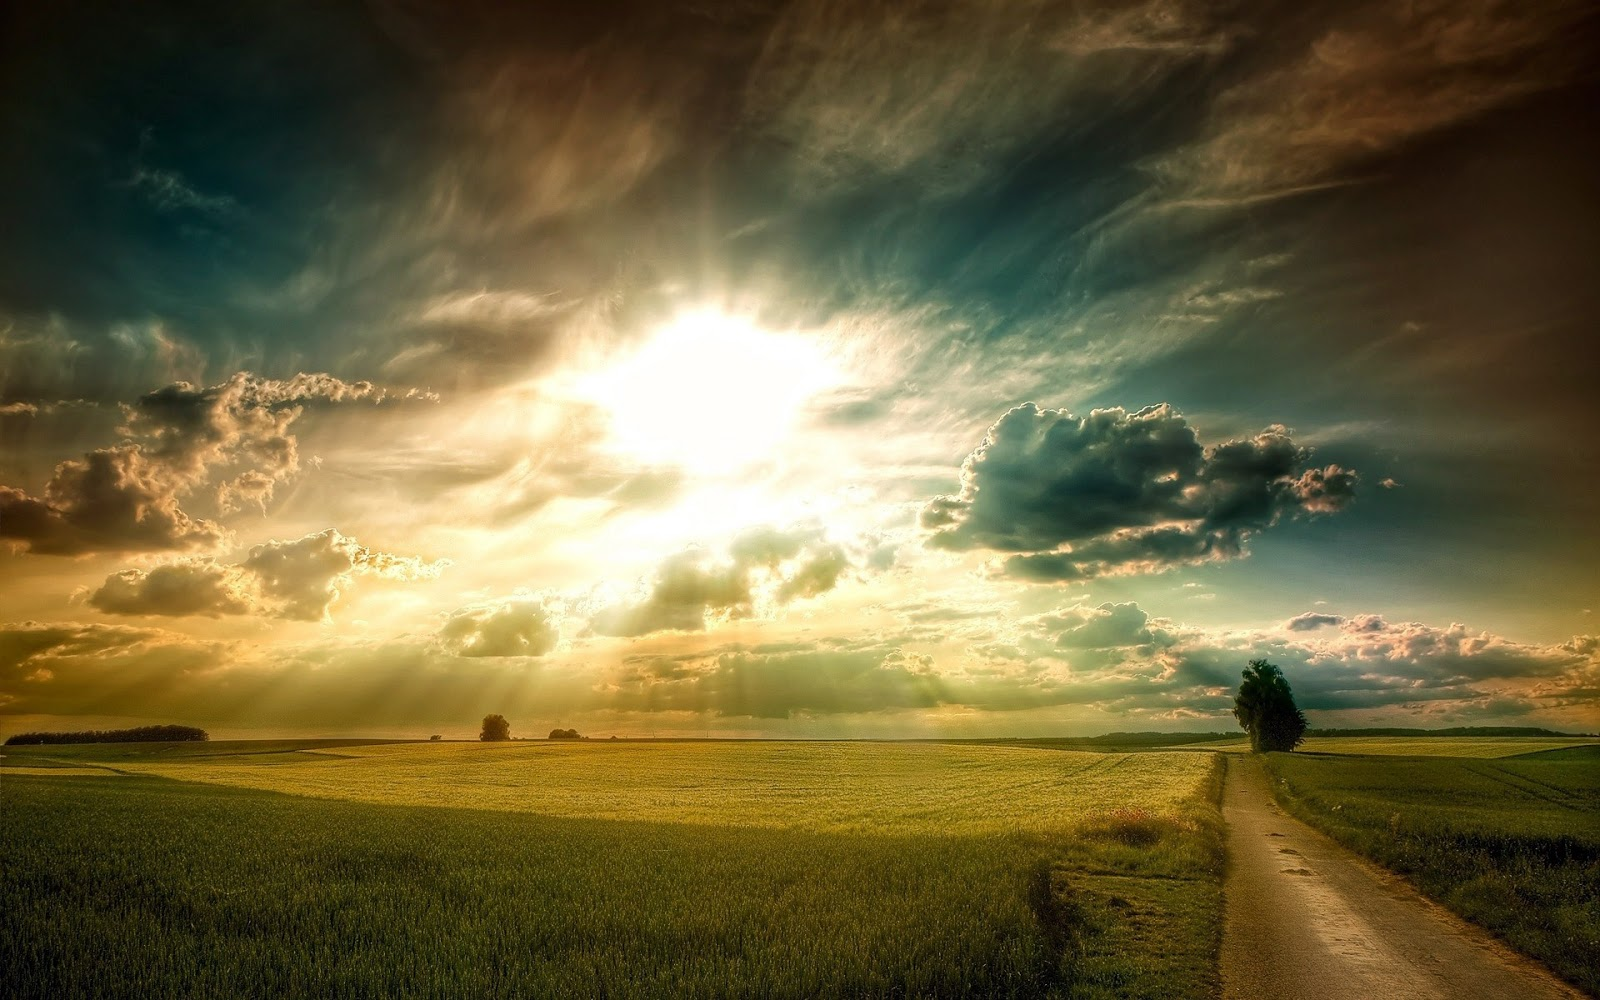 nature wallpaperhigh definition - photo #3